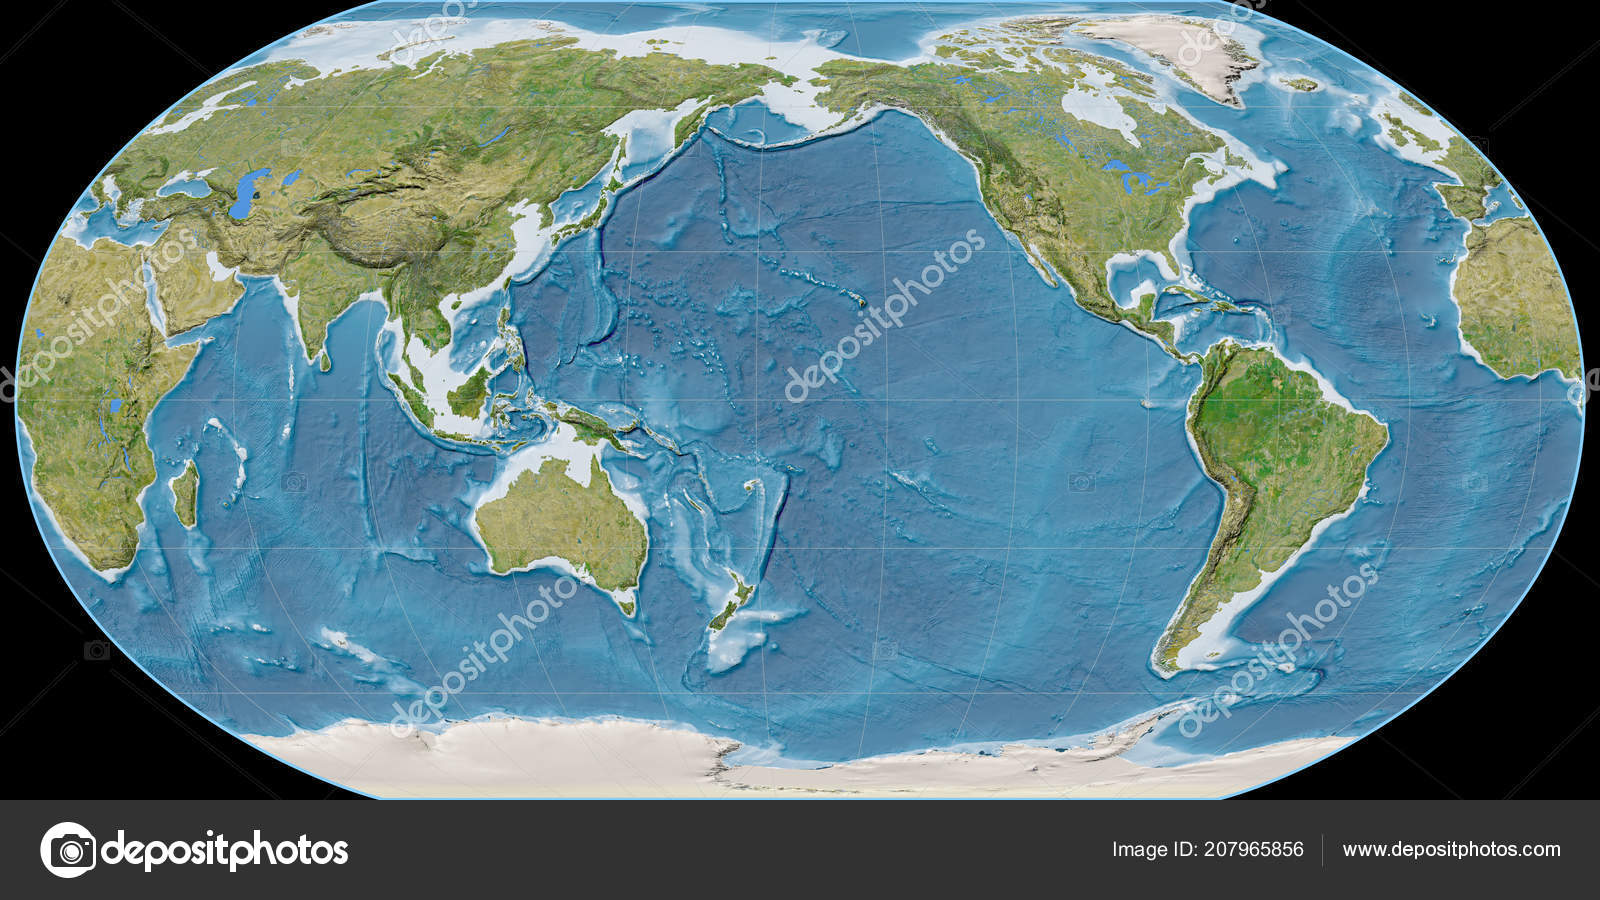 Sattelite Map Of World.World Map Robinson Projection Centered 170 West Longitude Satellite